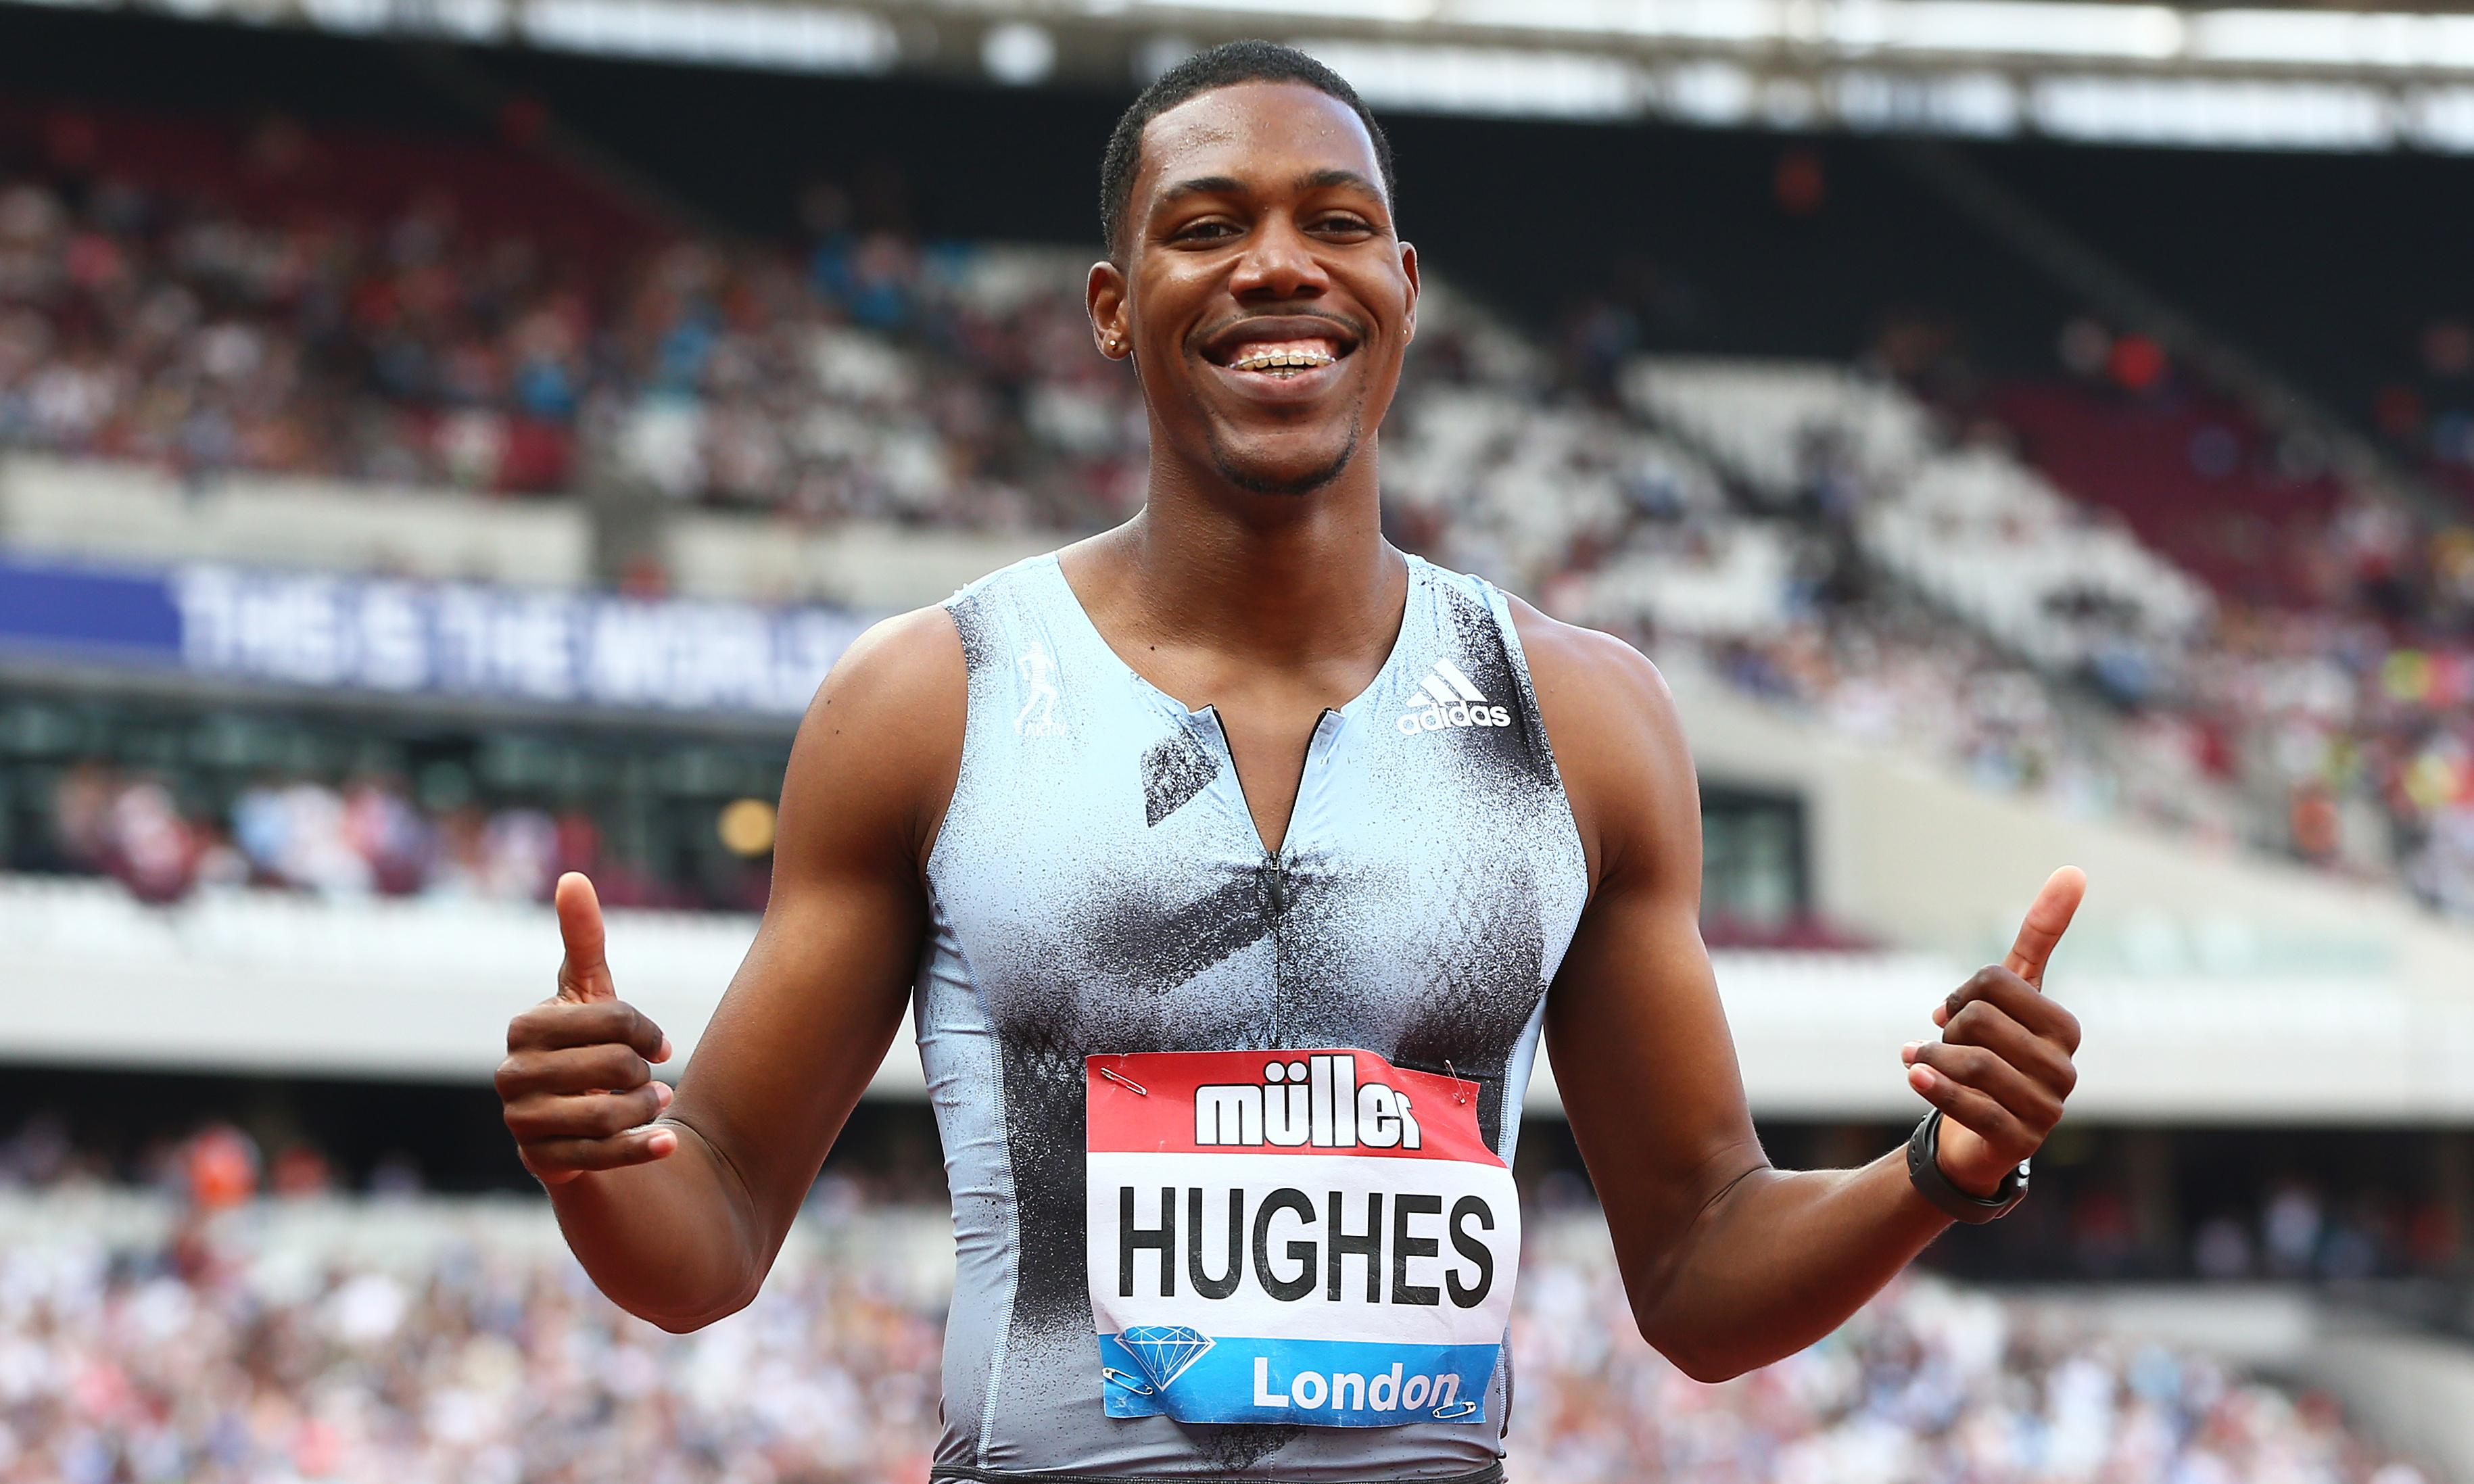 Zharnel Hughes targets UK record: 'I believe I can run 9.8, possibly a 9.7'